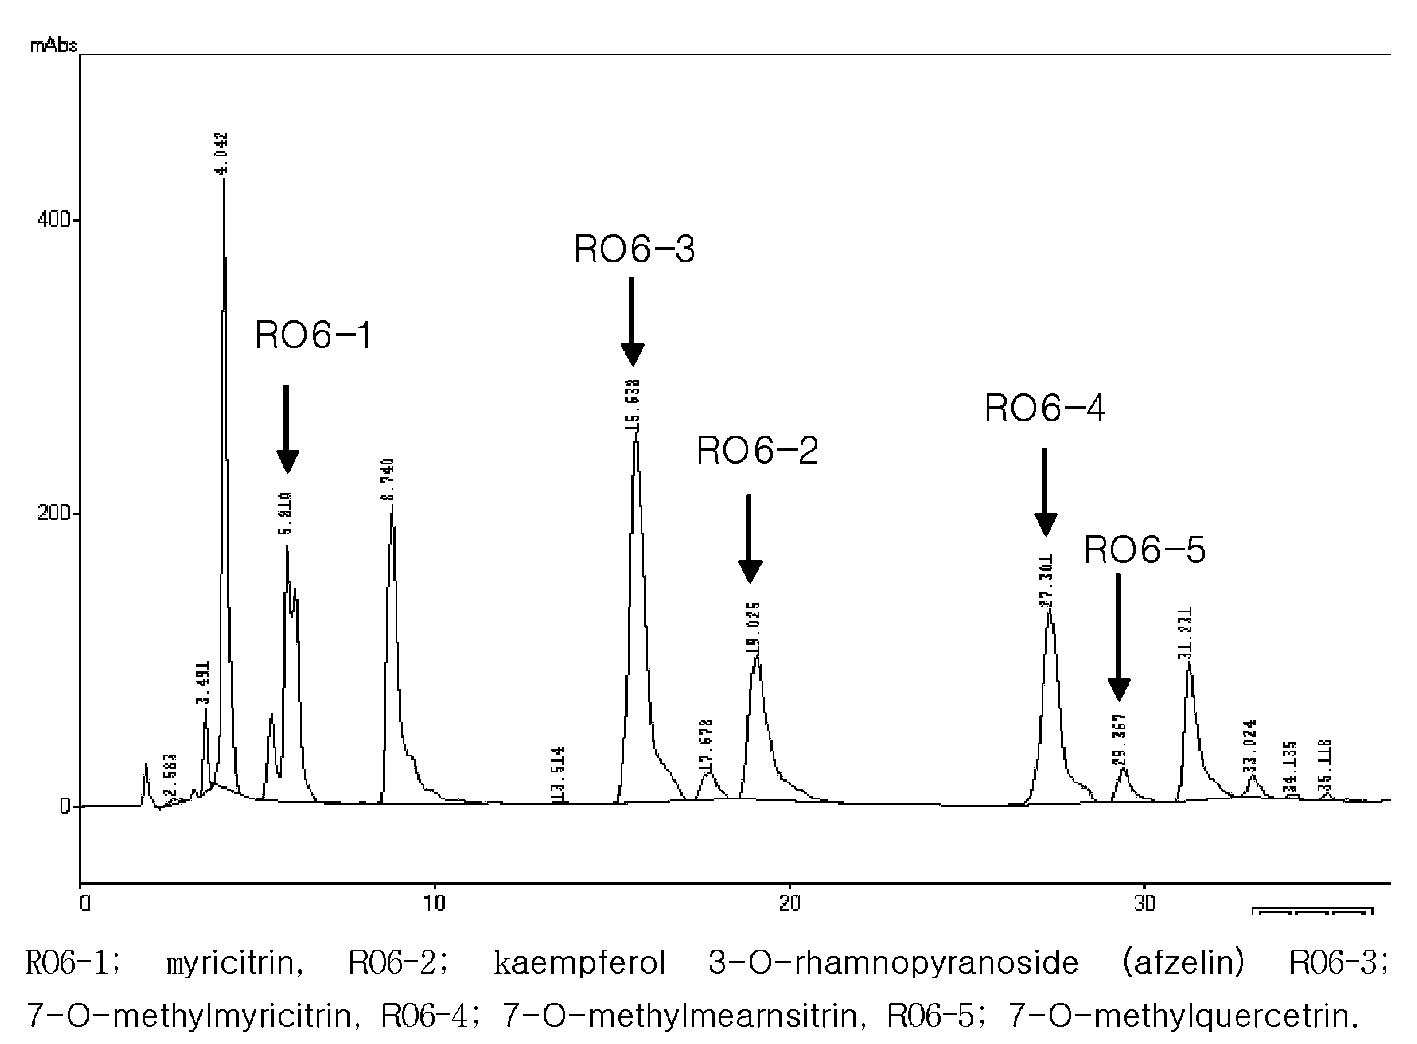 tlc flavonoid Quantitative estimates of conjugated flavonoid content were obtained by using hplc to analyze the level of free flavonoids present in acid-hydrolyzed extracts from commercial fruits and vegetables.